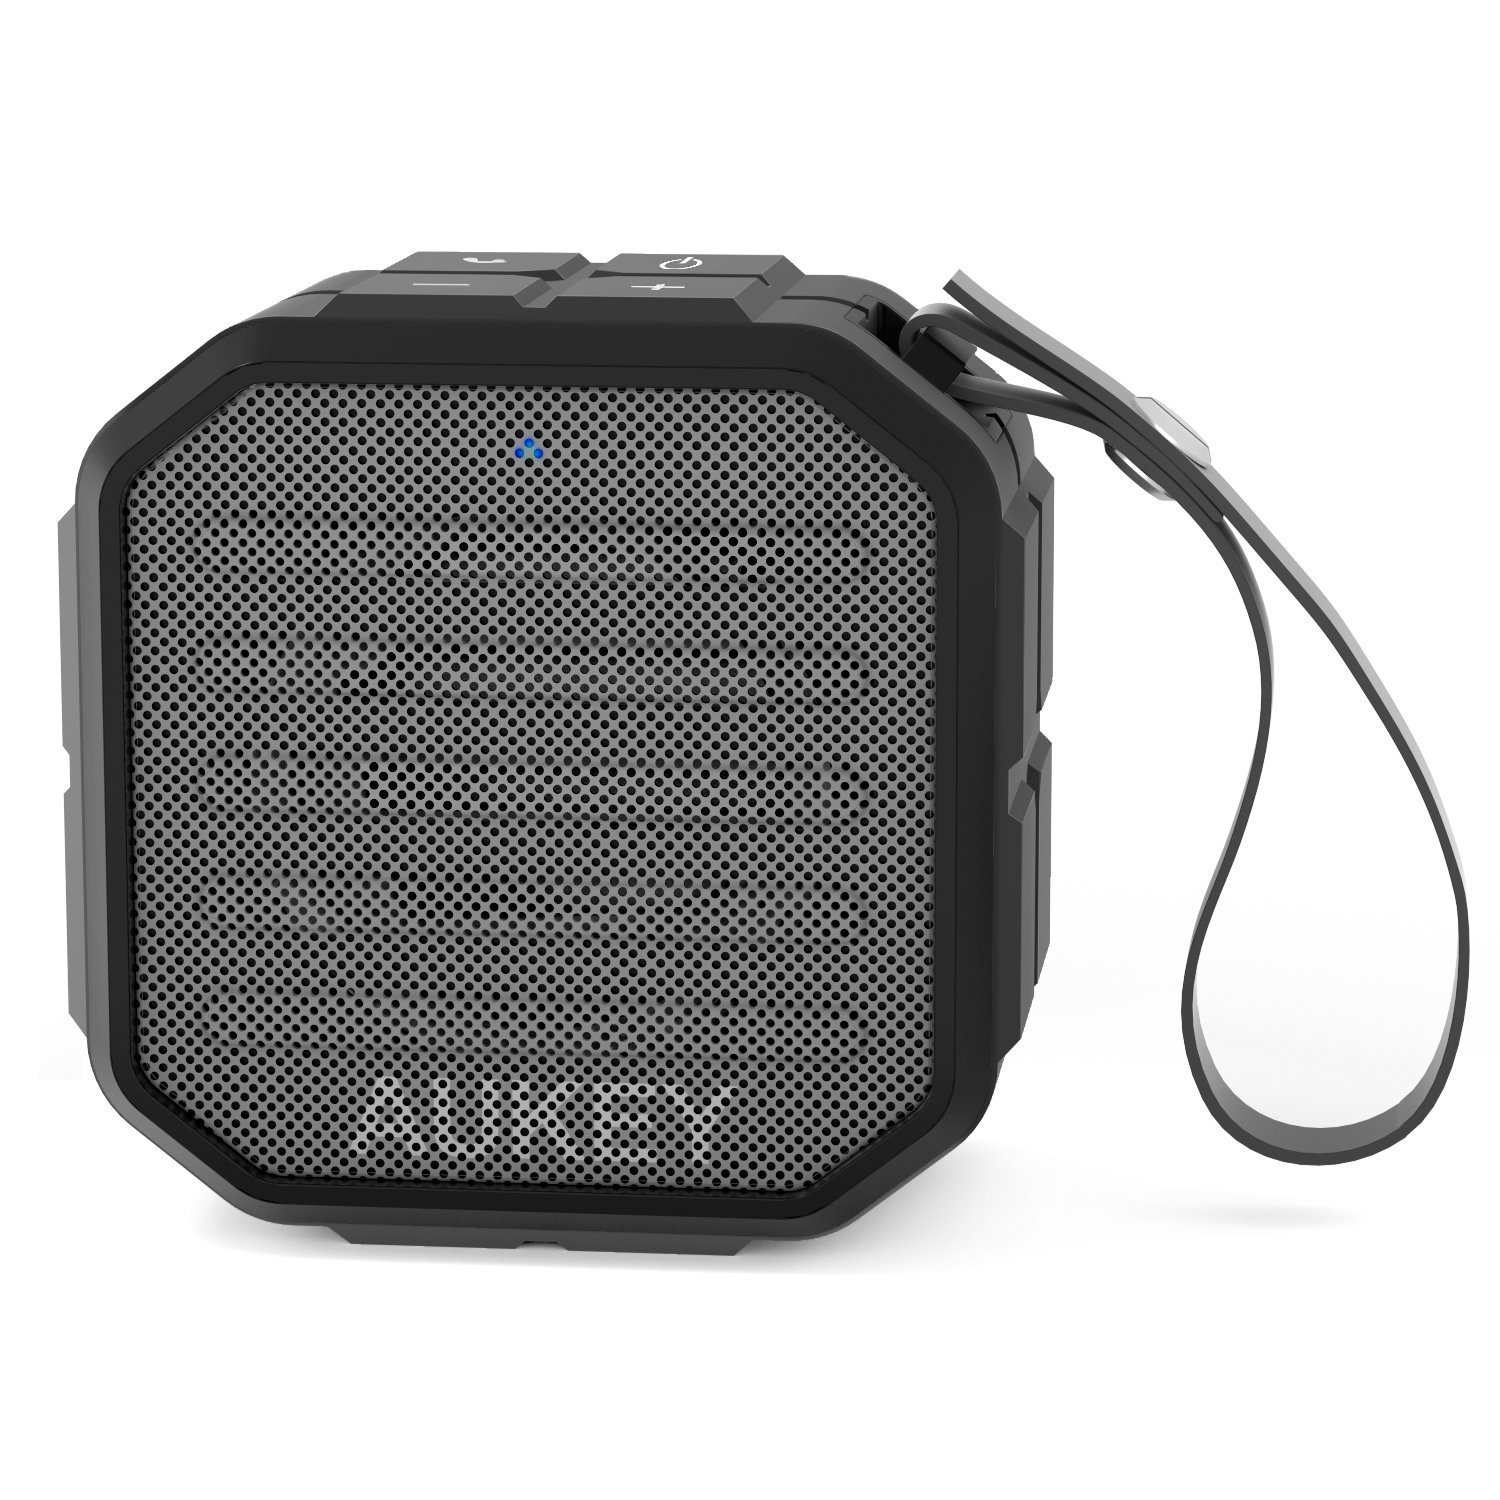 AUKEY Portable Bluetooth Speakers with Enhanced Bass and Built in Mic Outdoor Wireless Speaker Water Resistant for iPhone, iPad, Samsung by AUKEY (Image #2)